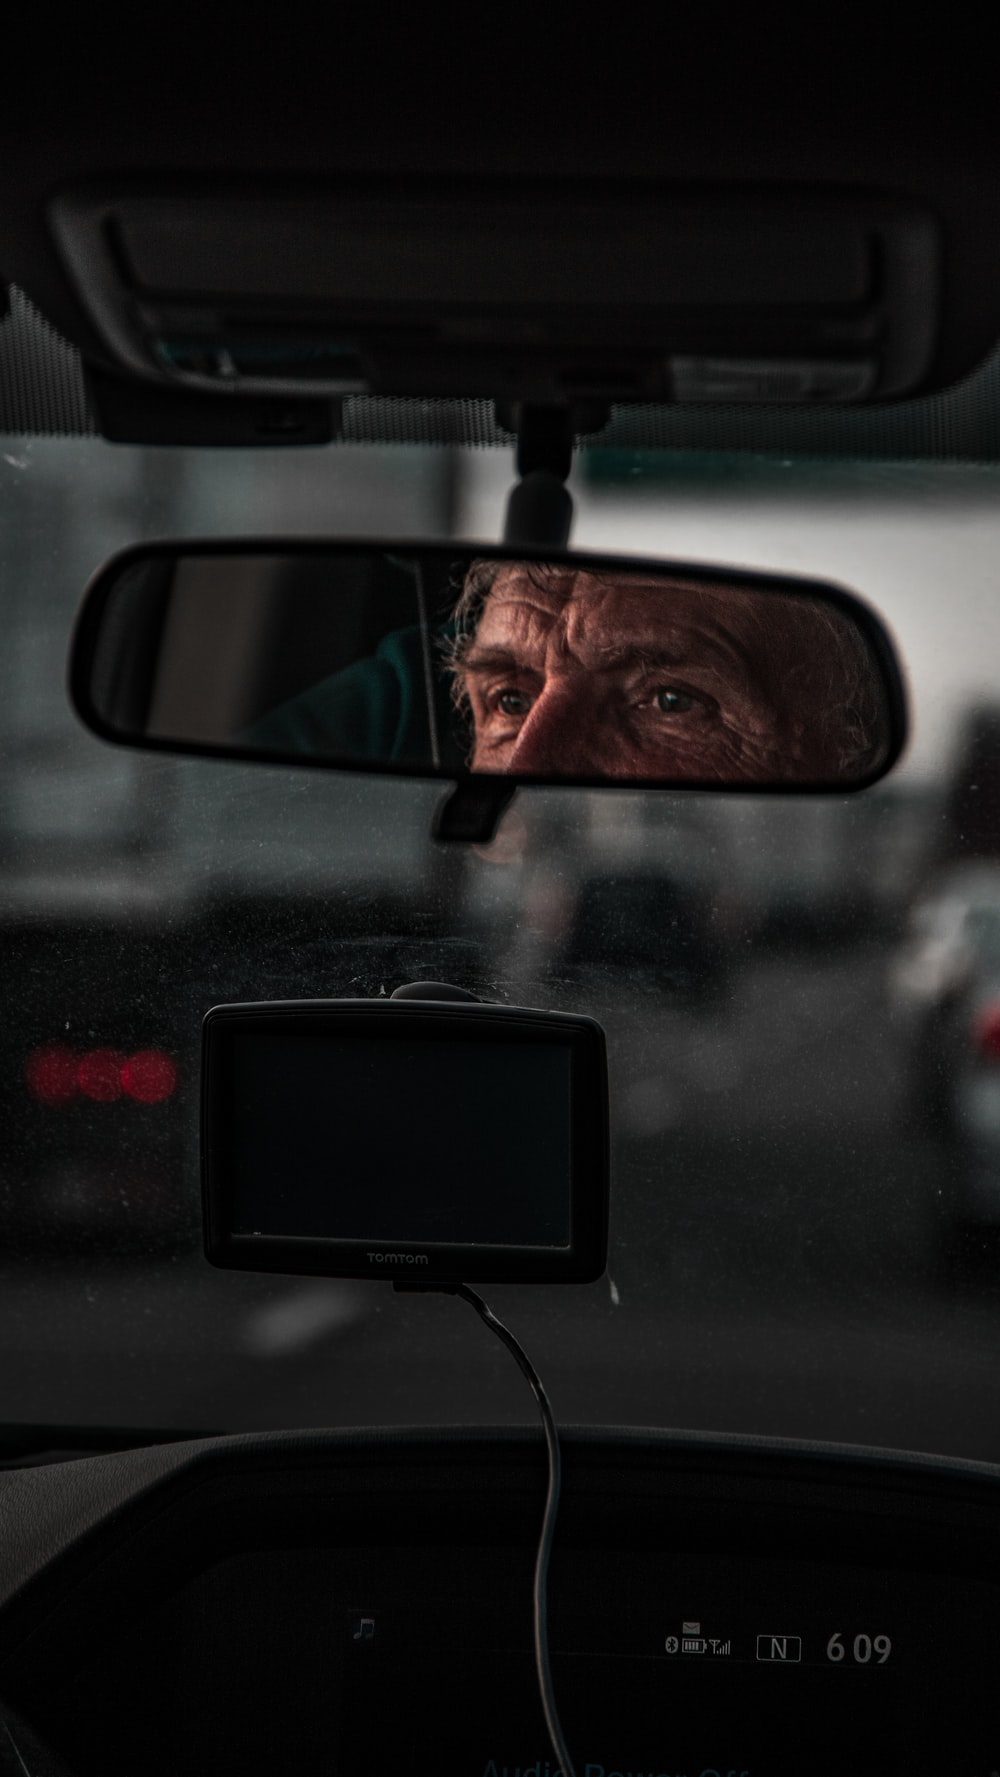 rear view mirror with man's eyes reflection